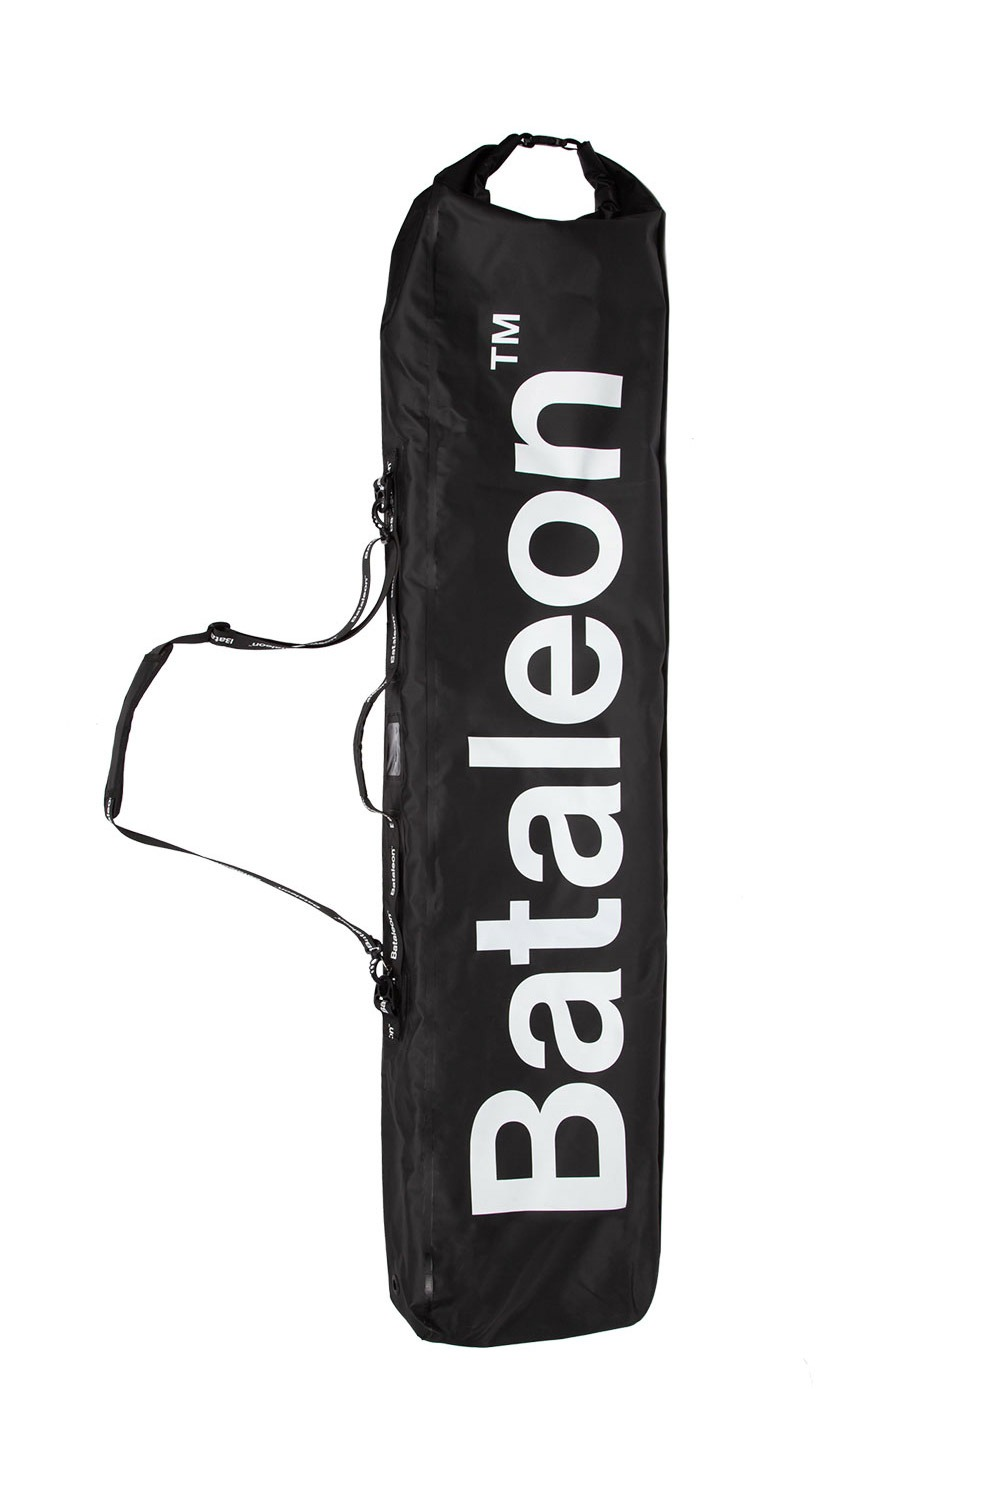 2021 바탈레온 보드백 겟어웨이백 2021 BATALEON_GATEWAY BOARD BAG_BLACK_FKBA002BK